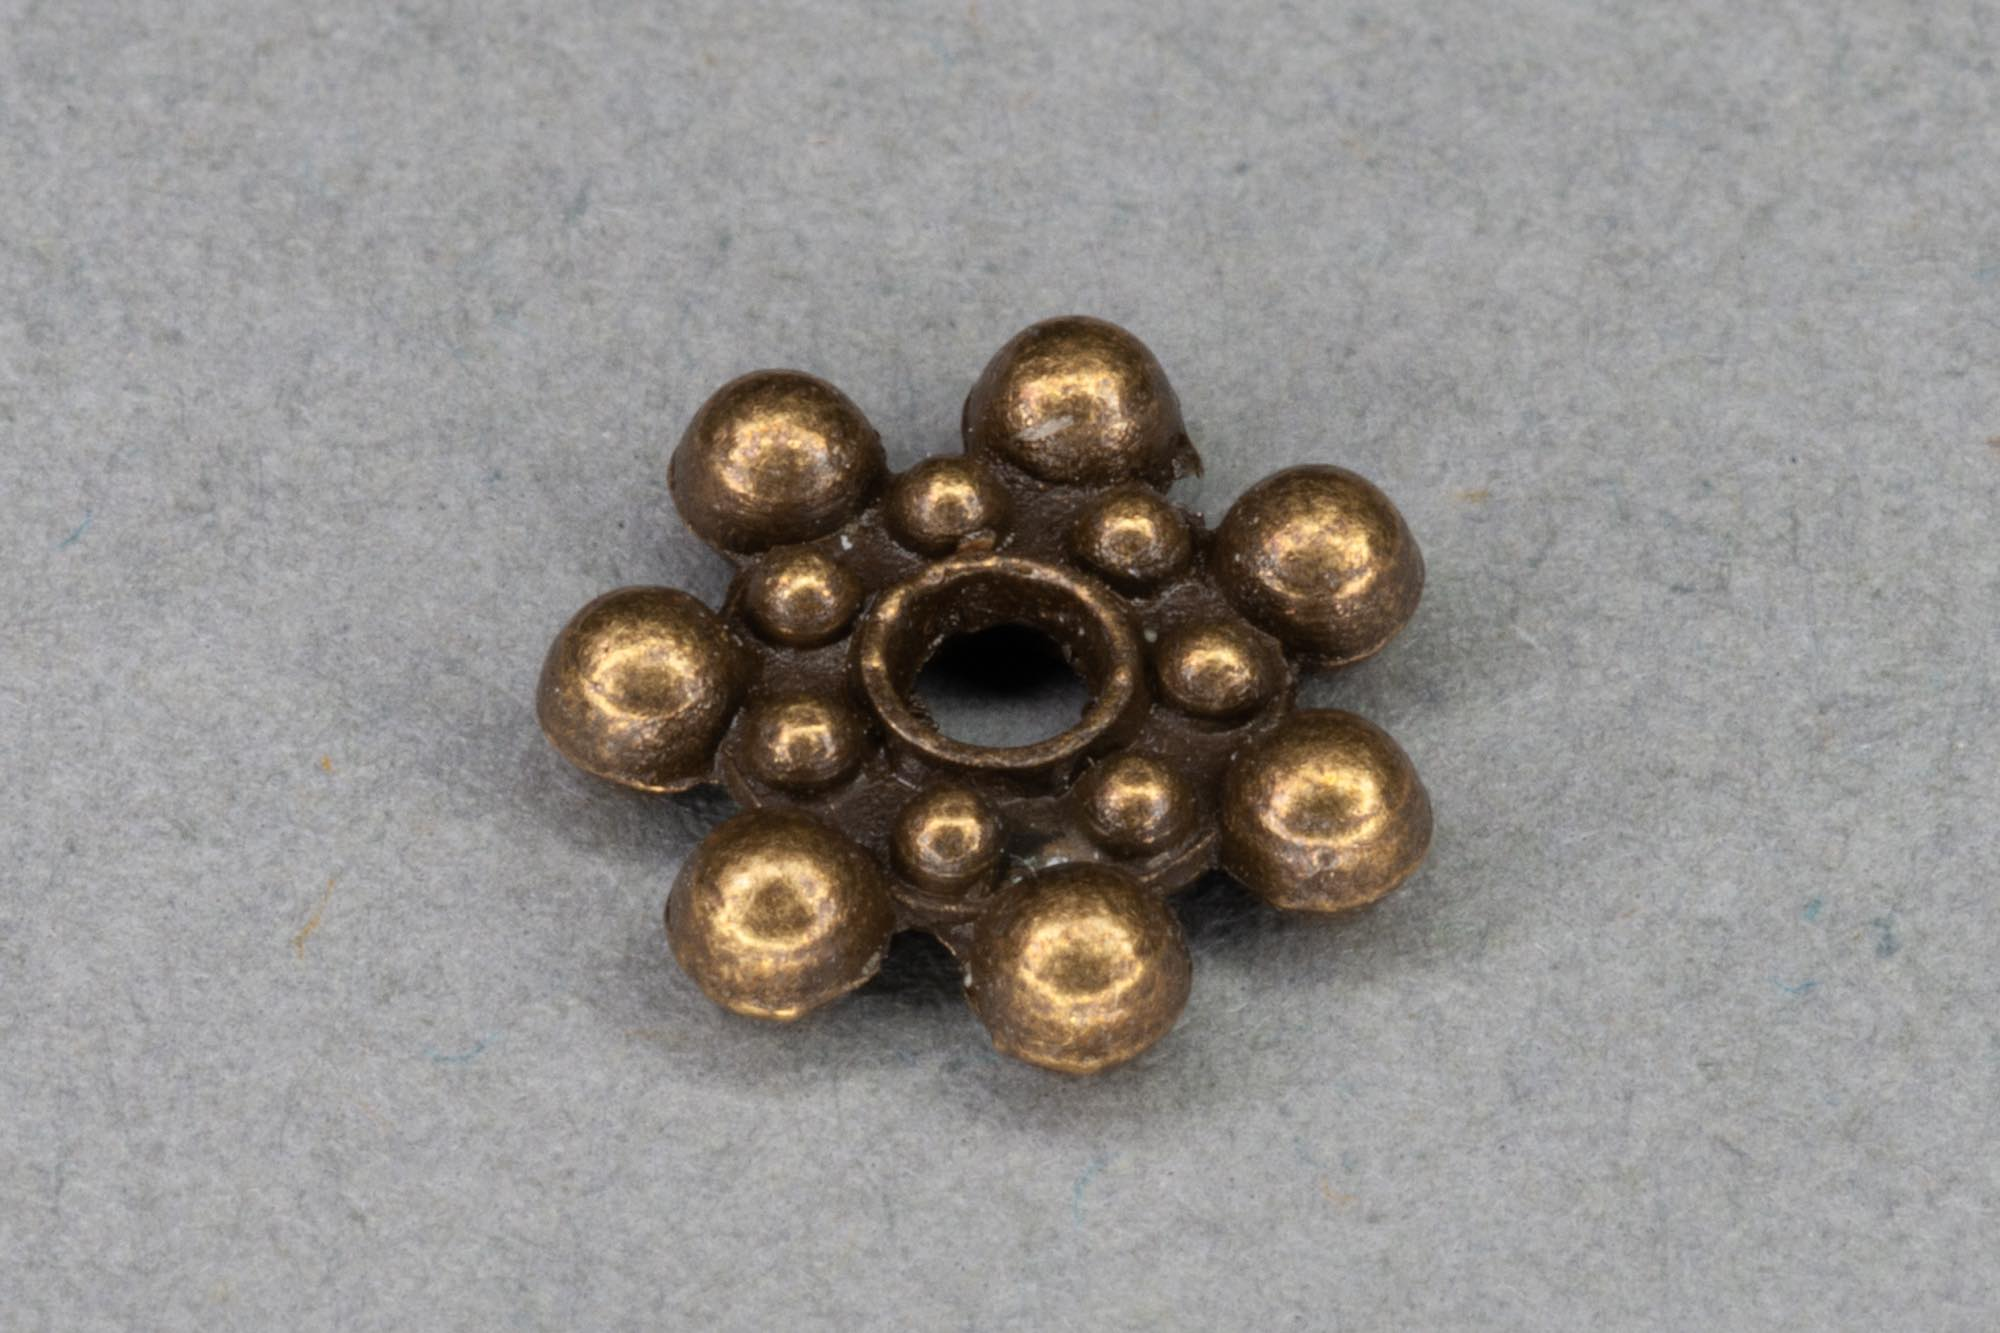 Antique Brass Colour Flat Round Spacer Bead 8x2mm, 1mm hole